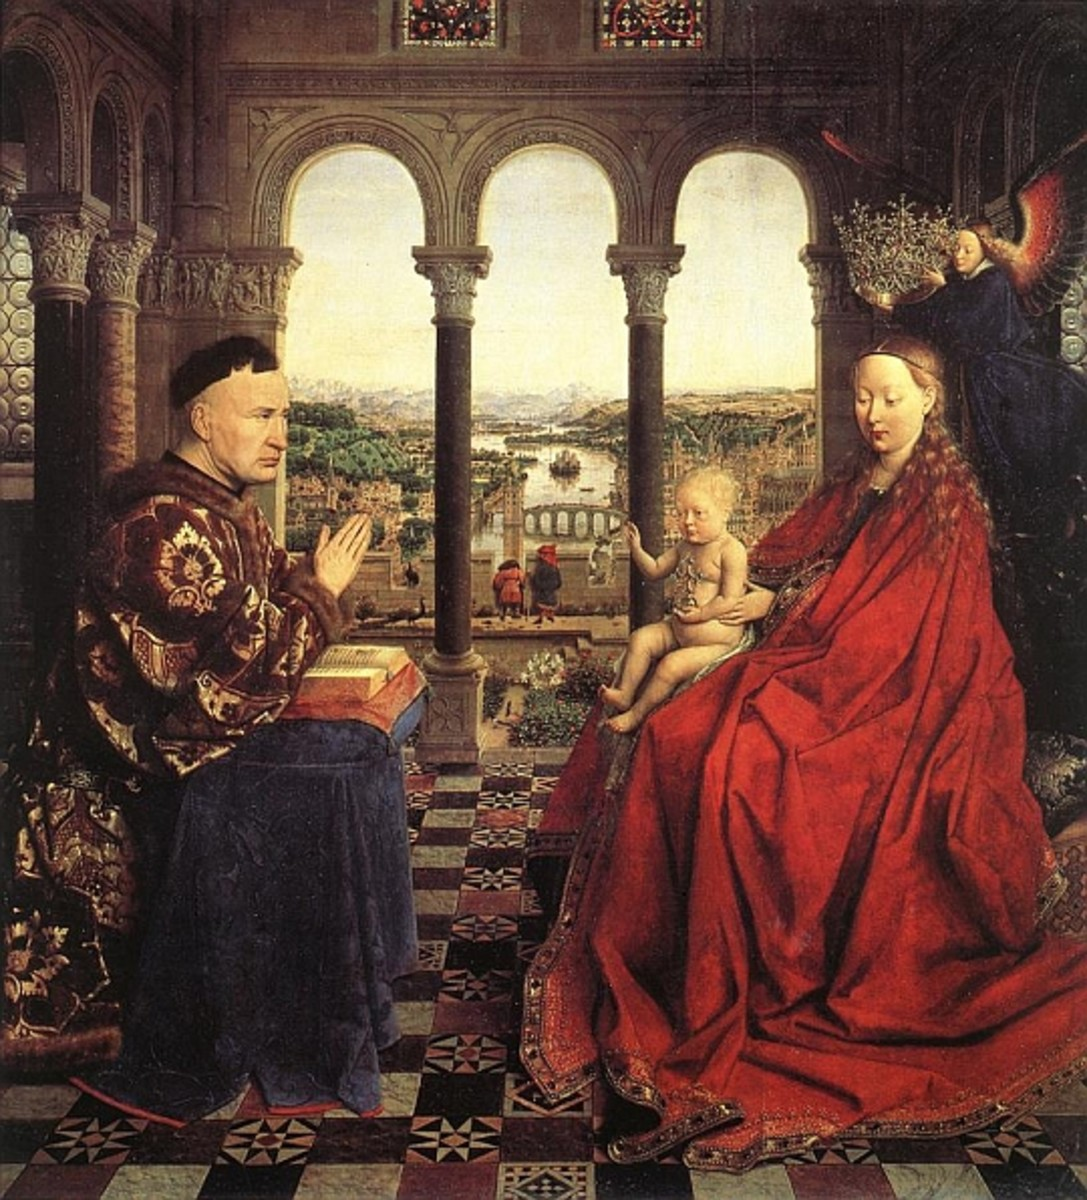 Art, Painters, and the History of Renaissance Paintings